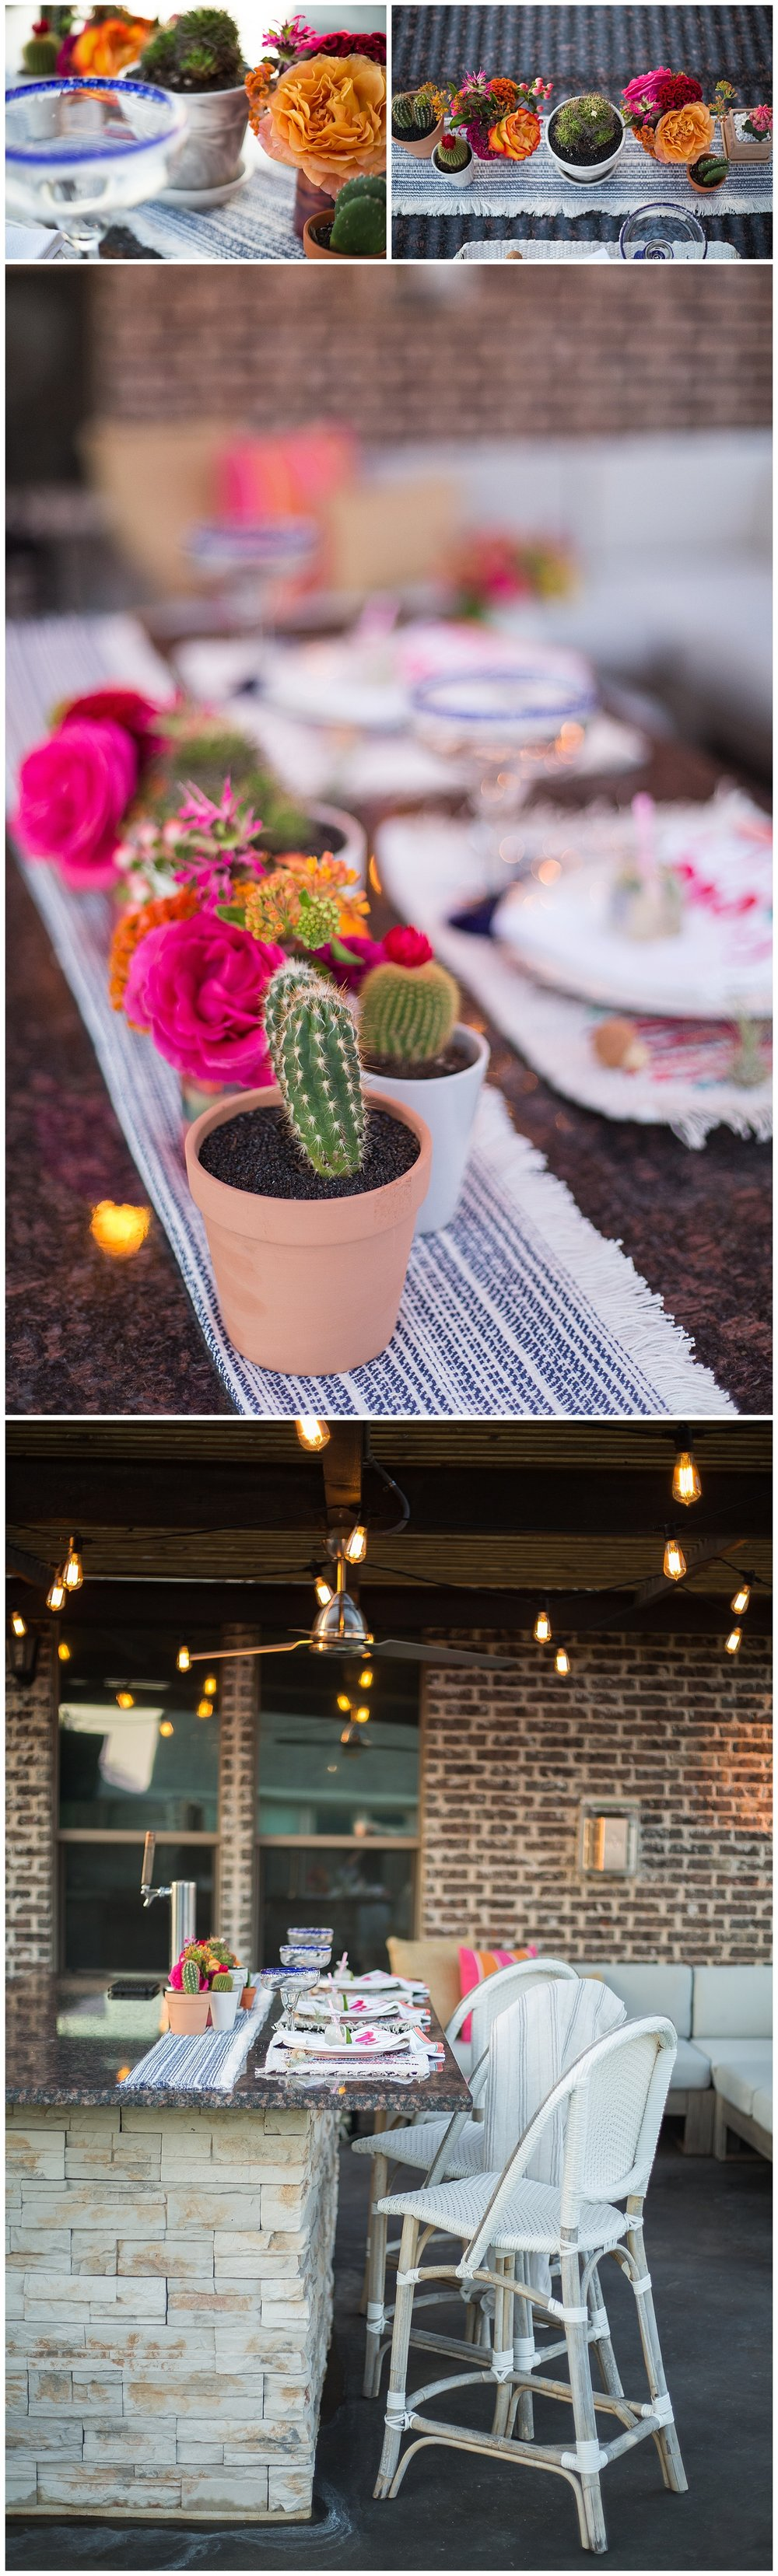 Patio-decor-with-bright-colors-and-cactuses